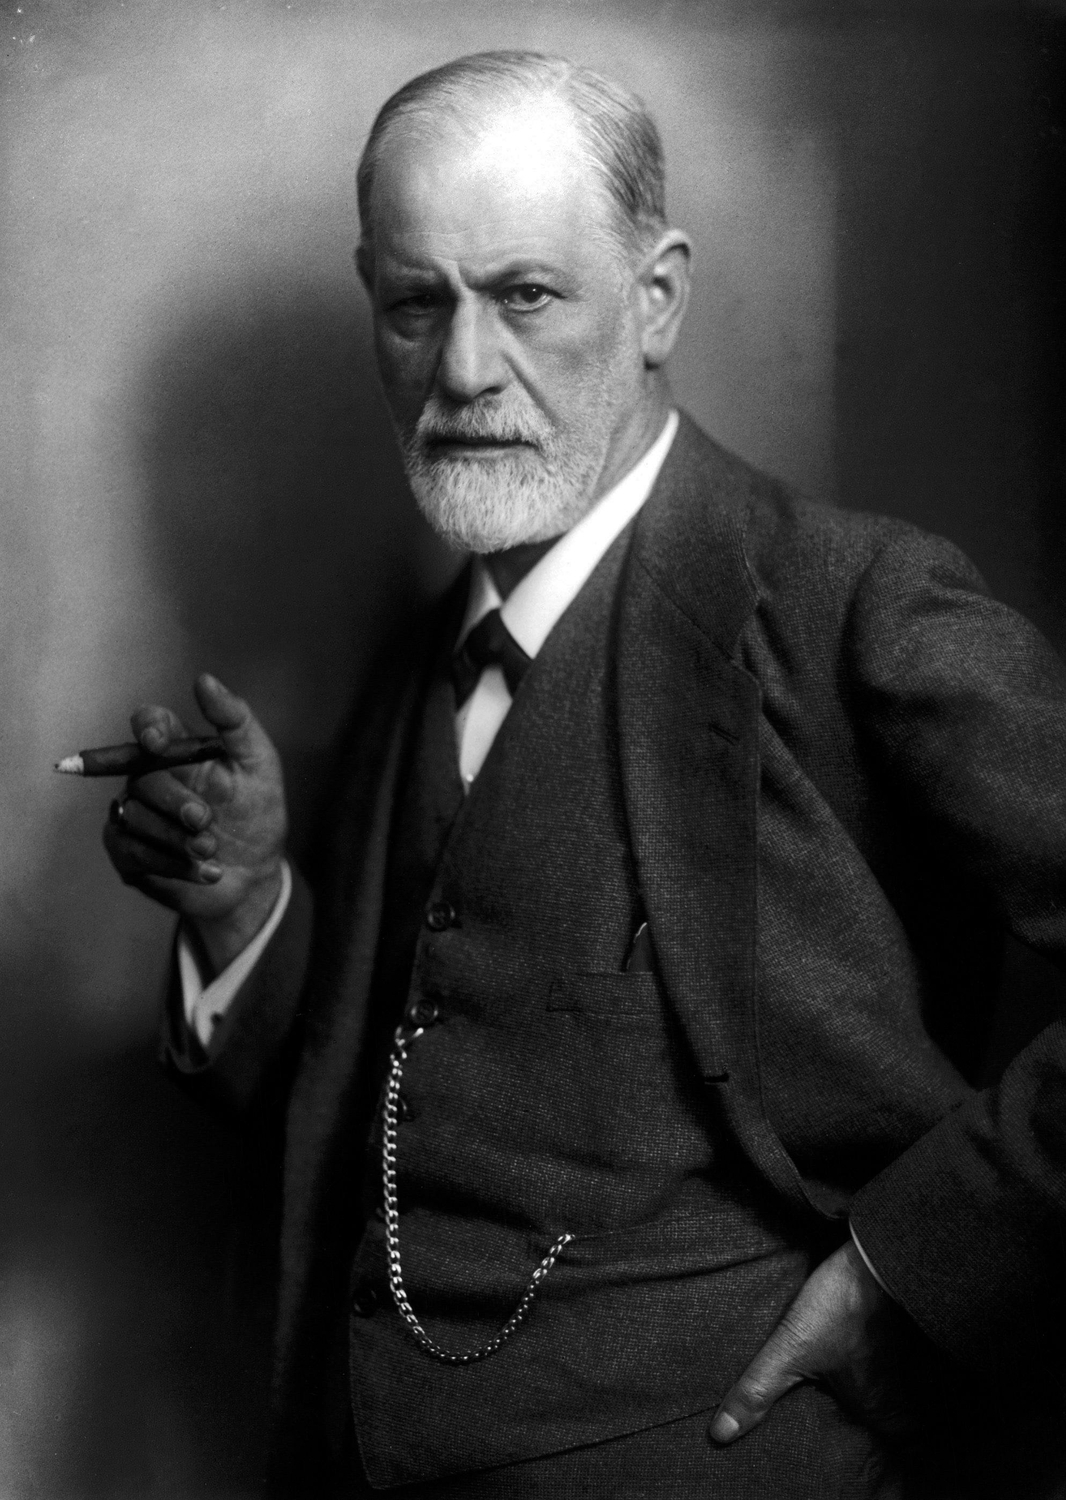 File:Sigmund Freud LIFE.jpg - Wikipedia, the free encyclopedia